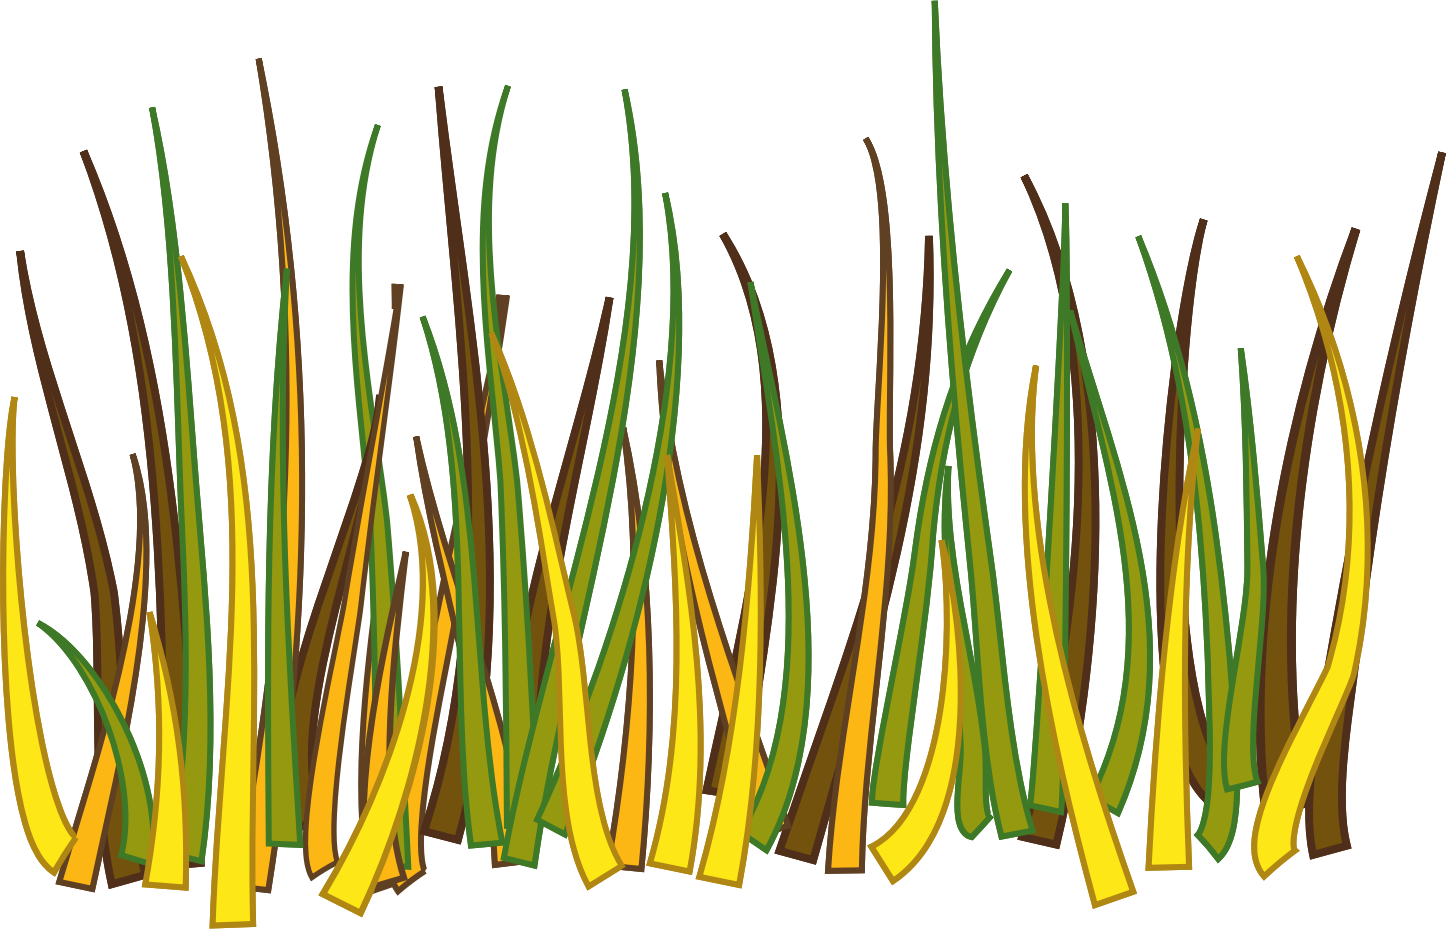 Grass by Fractalbee